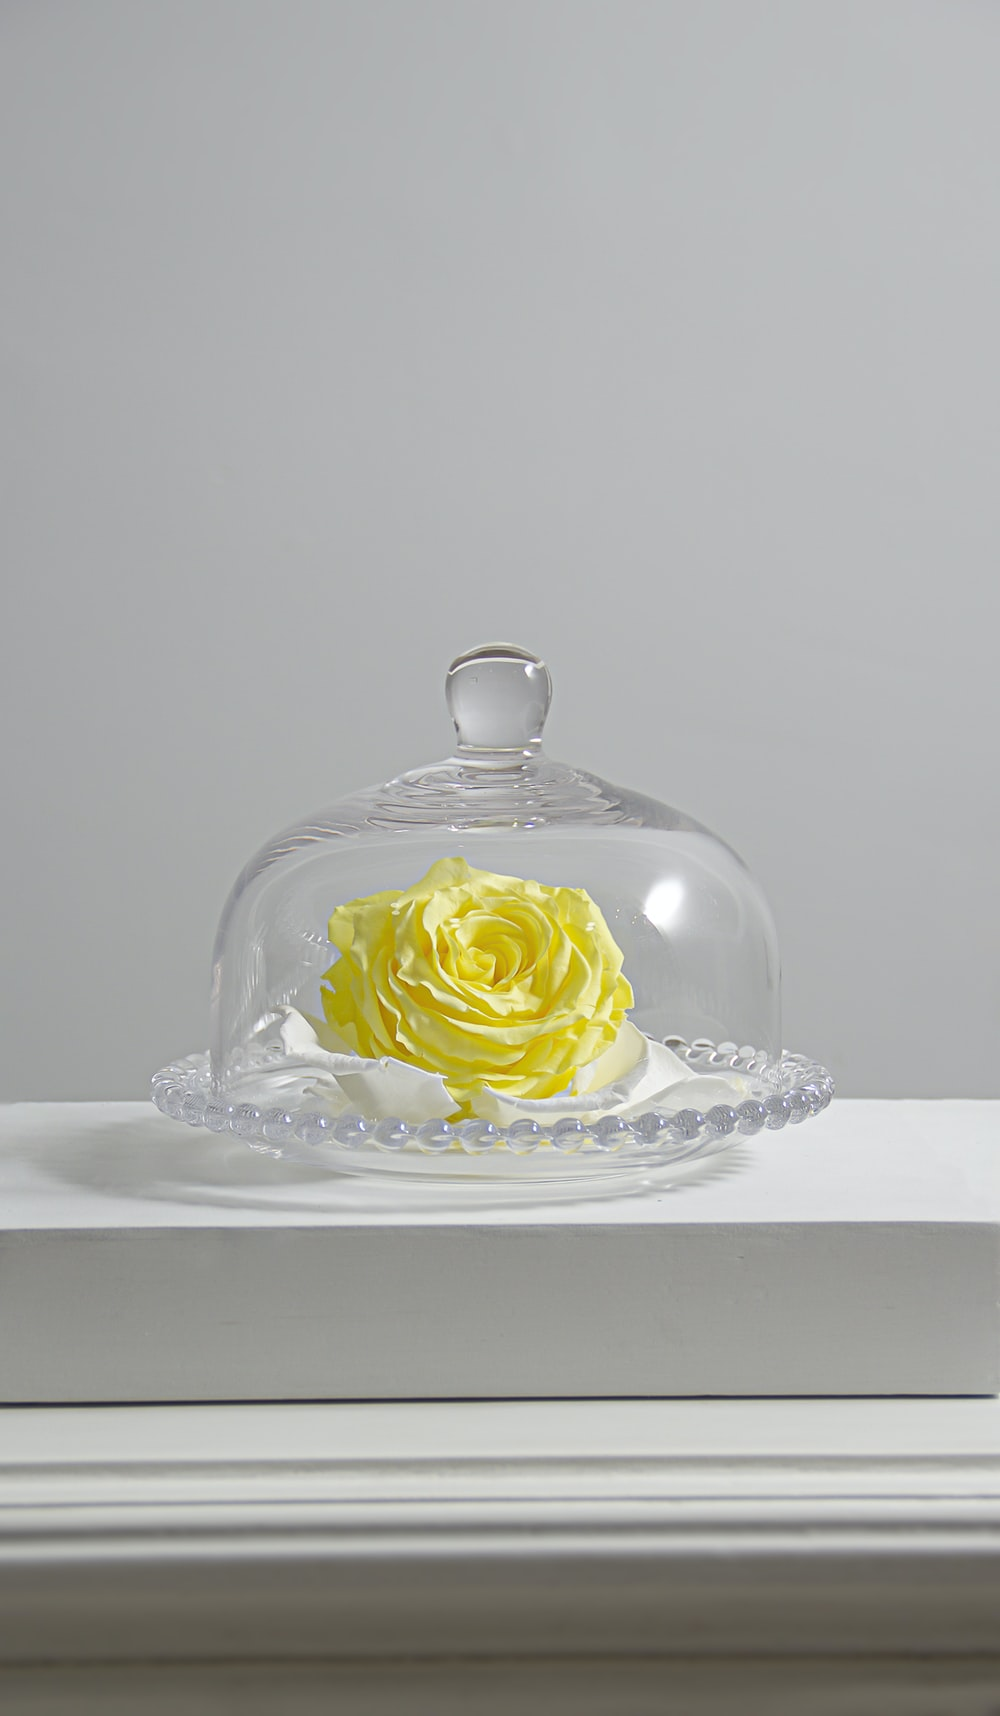 clear glass cake dome on white table